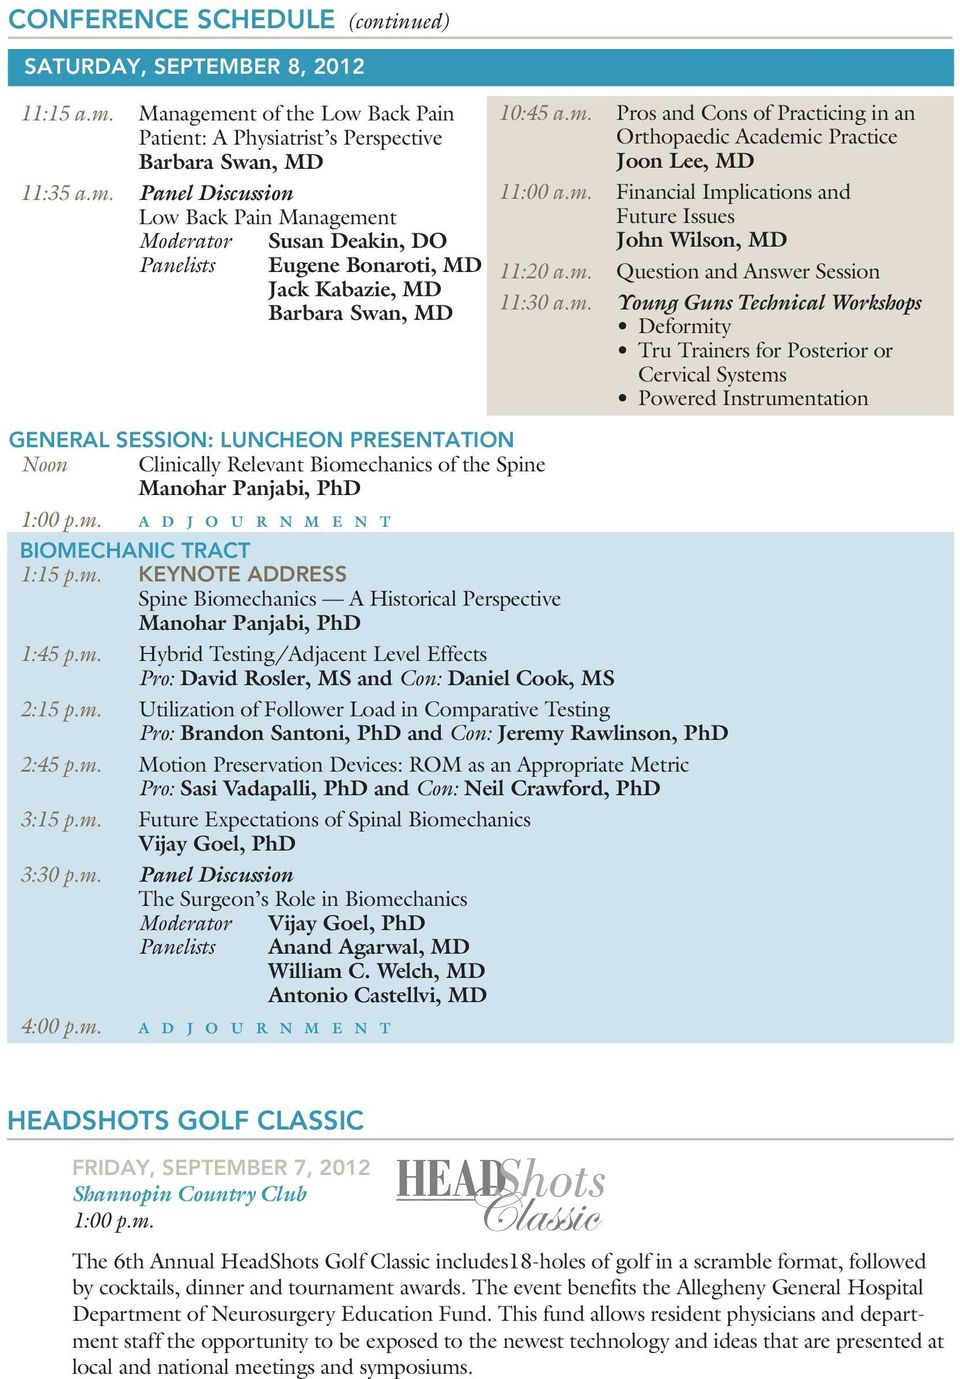 m. Pros and Cons of Practicing in an Orthopaedic Academic Practice Joon Lee, MD 11:00 a.m. Financial Implications and Future Issues John Wilson, MD 11:20 a.m. Question and Answer Session 11:30 a.m.